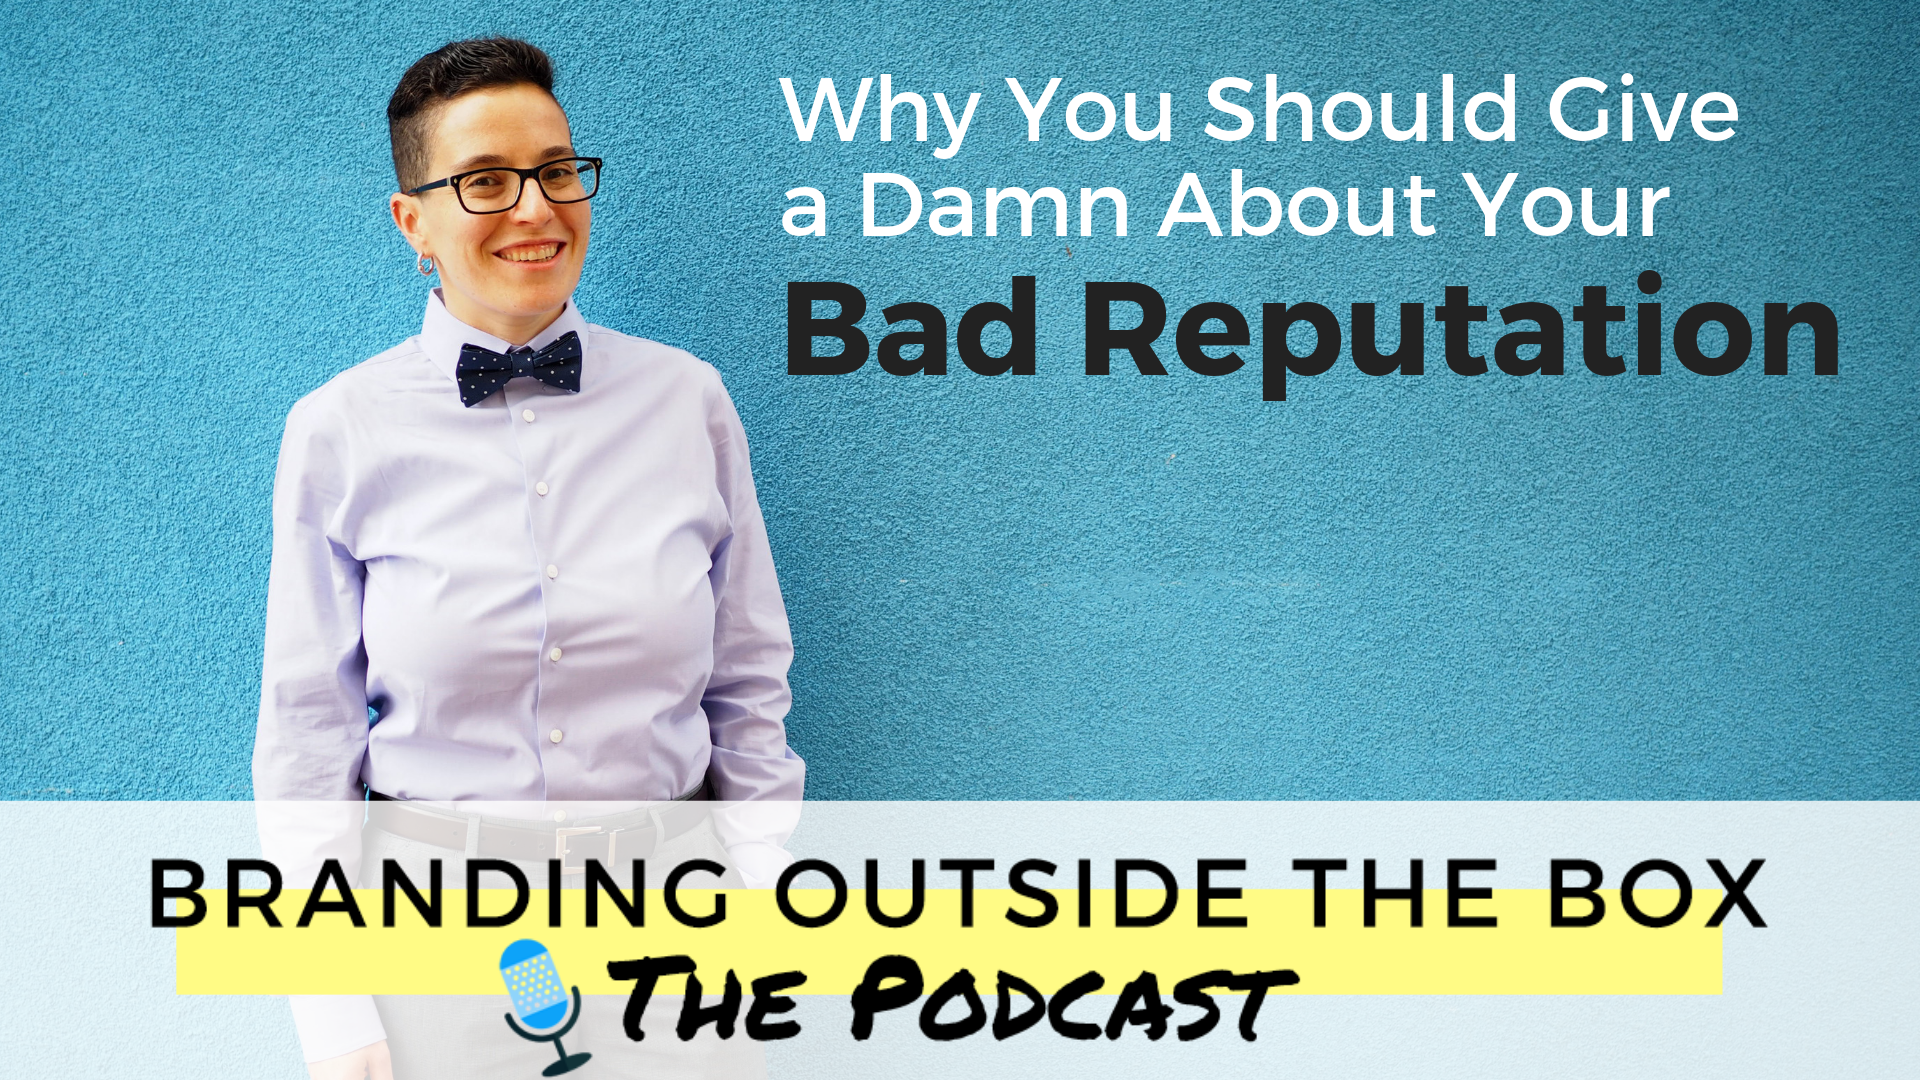 Why You Should Give a Damn About Your Bad Reputation